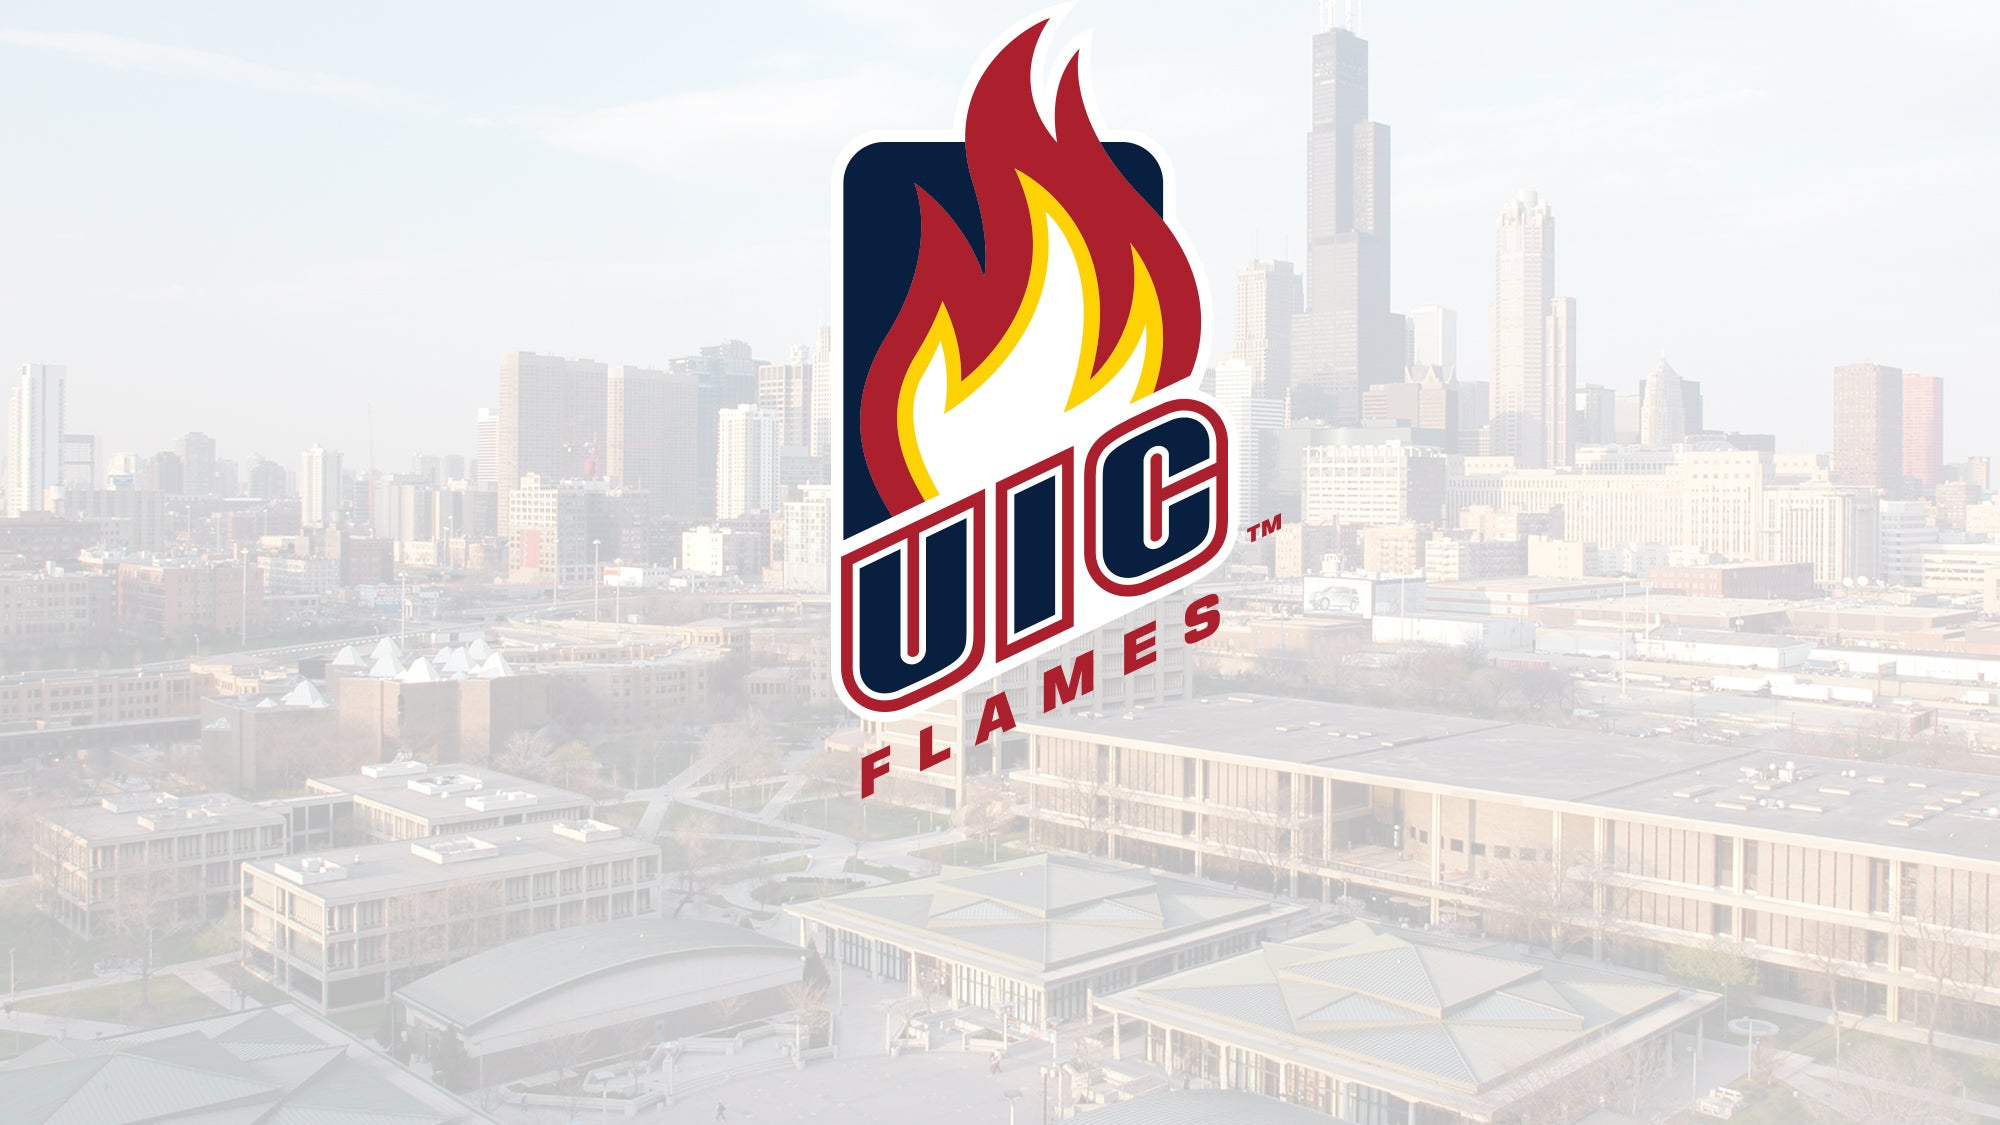 Family night: Illinois Flames Basketball game